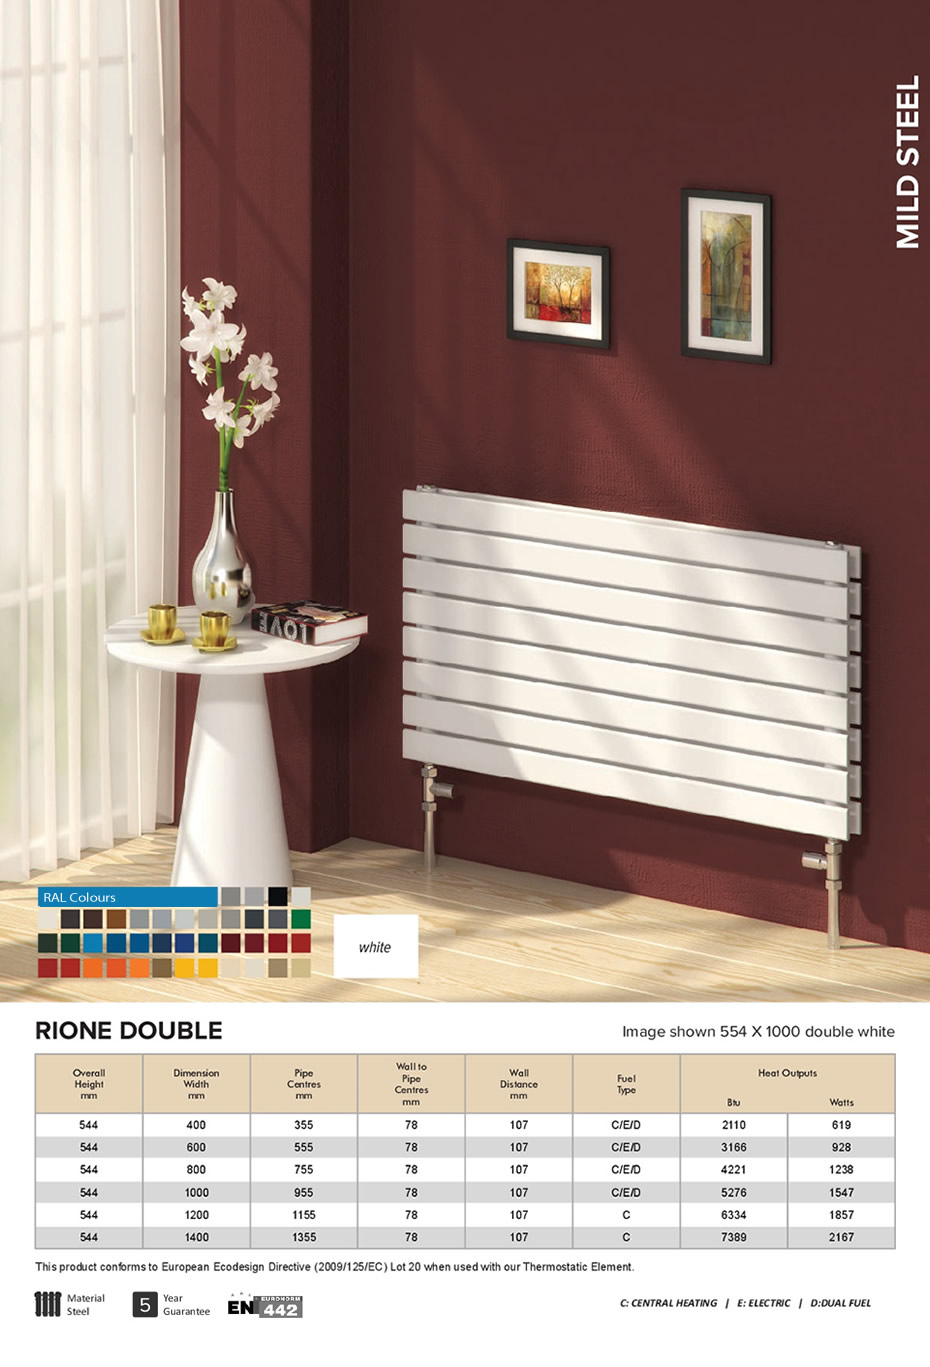 reina rione double horizontal